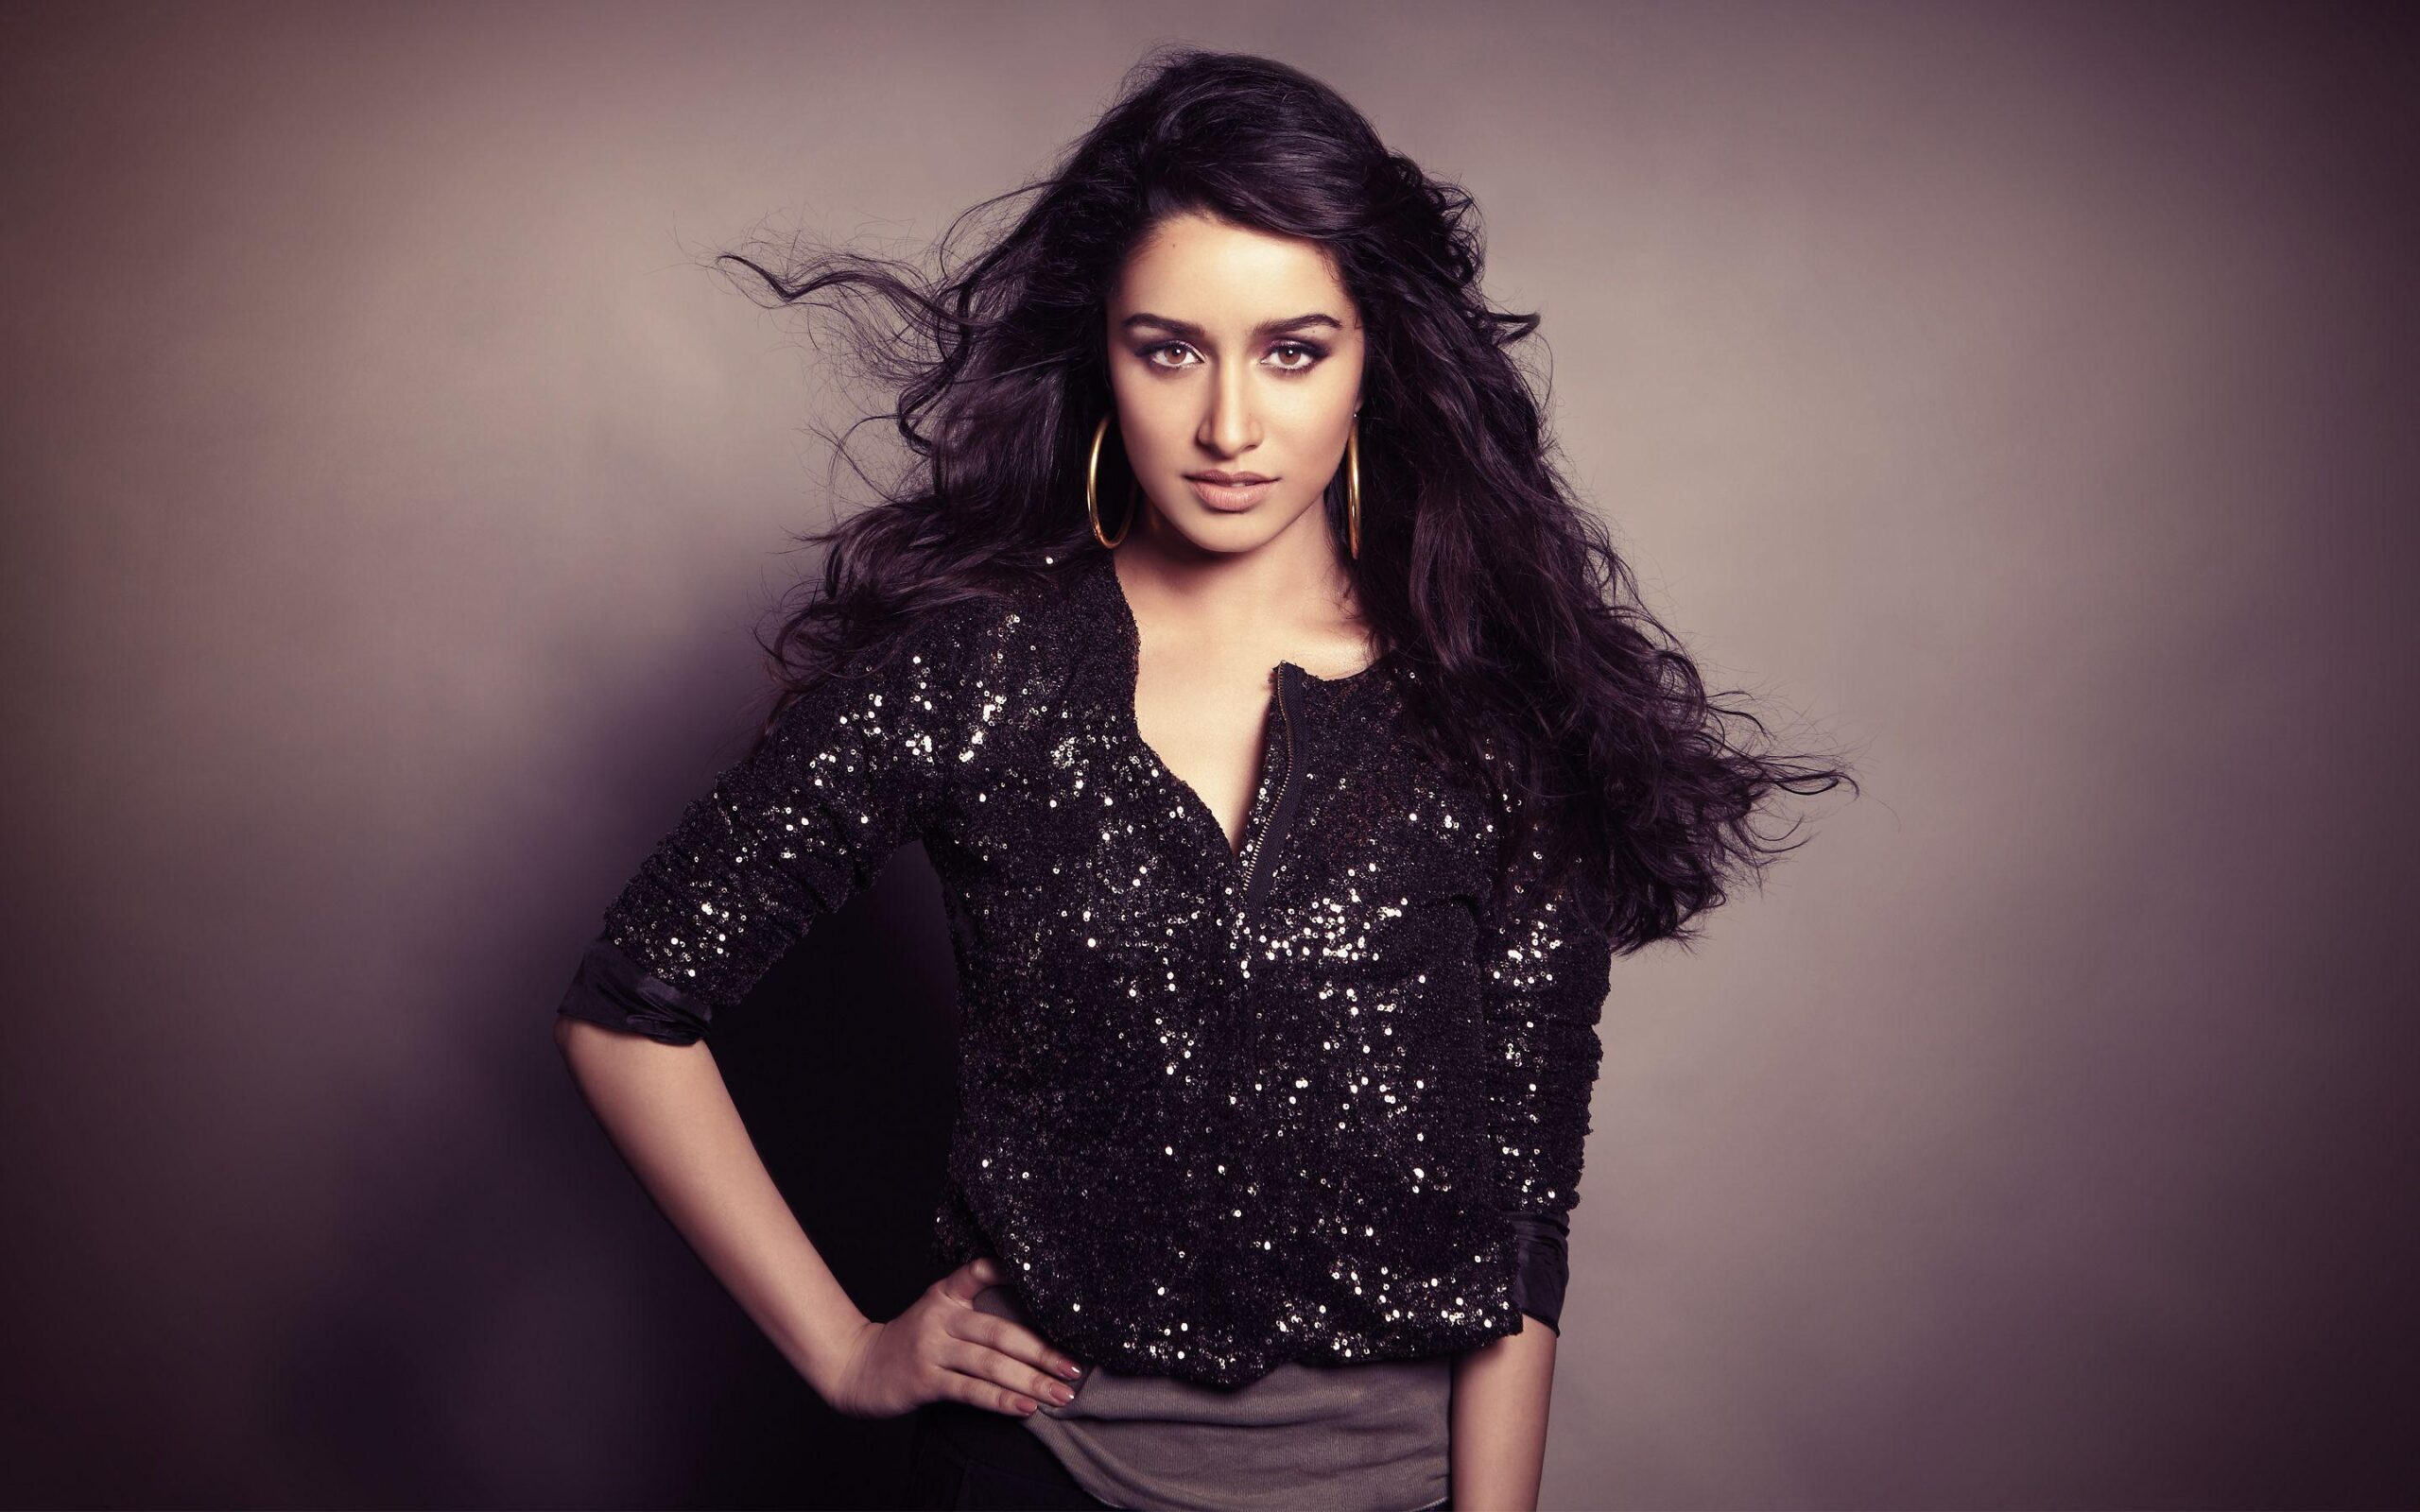 shraddha_kapoor_wallpaper_97338053